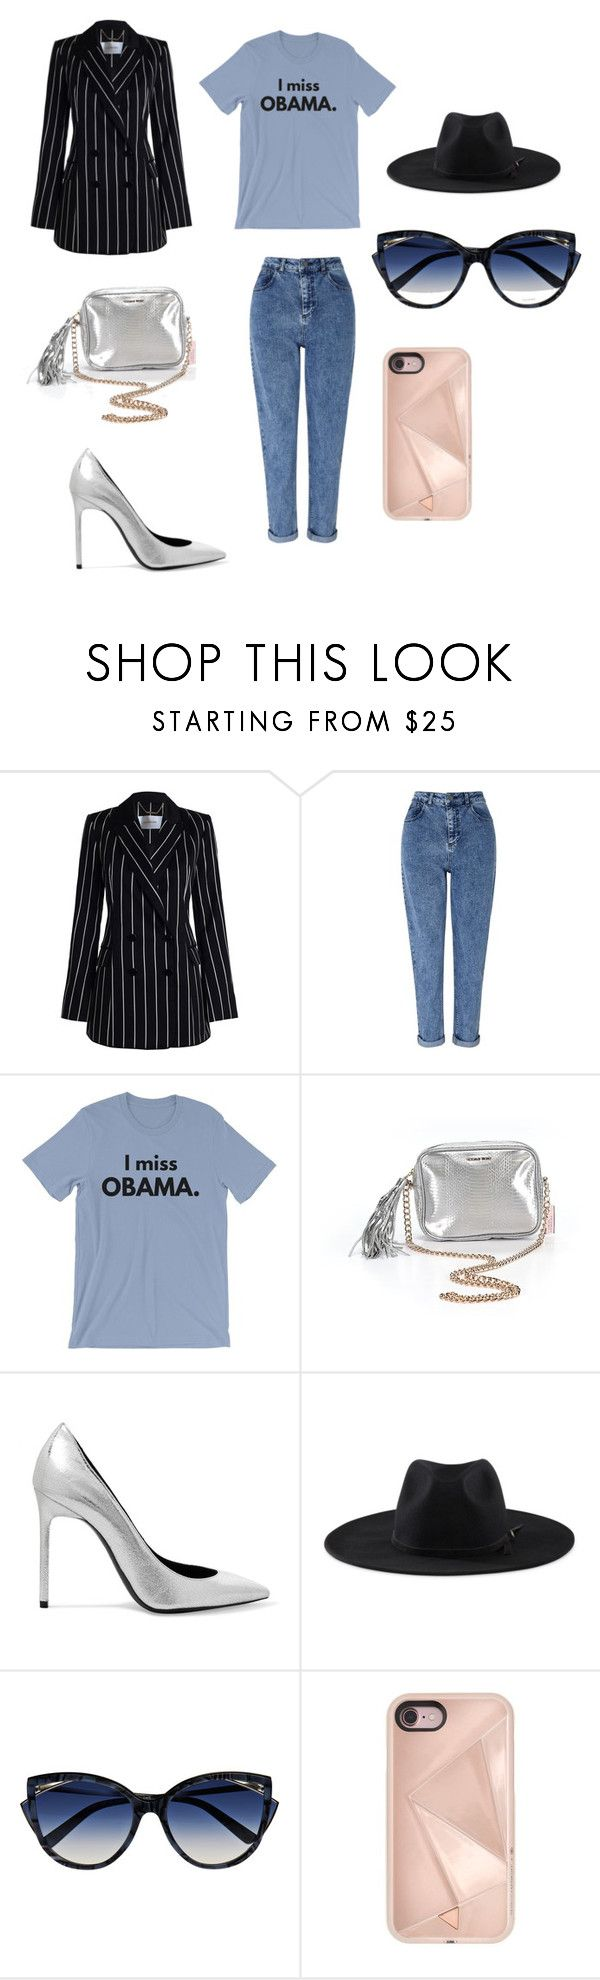 """trying to be edgy"" by chloeevans-2 ❤ liked on Polyvore featuring Zimmermann, Miss Selfridge, Victoria's Secret, Yves Saint Laurent, Goorin, La Perla and Rebecca Minkoff"